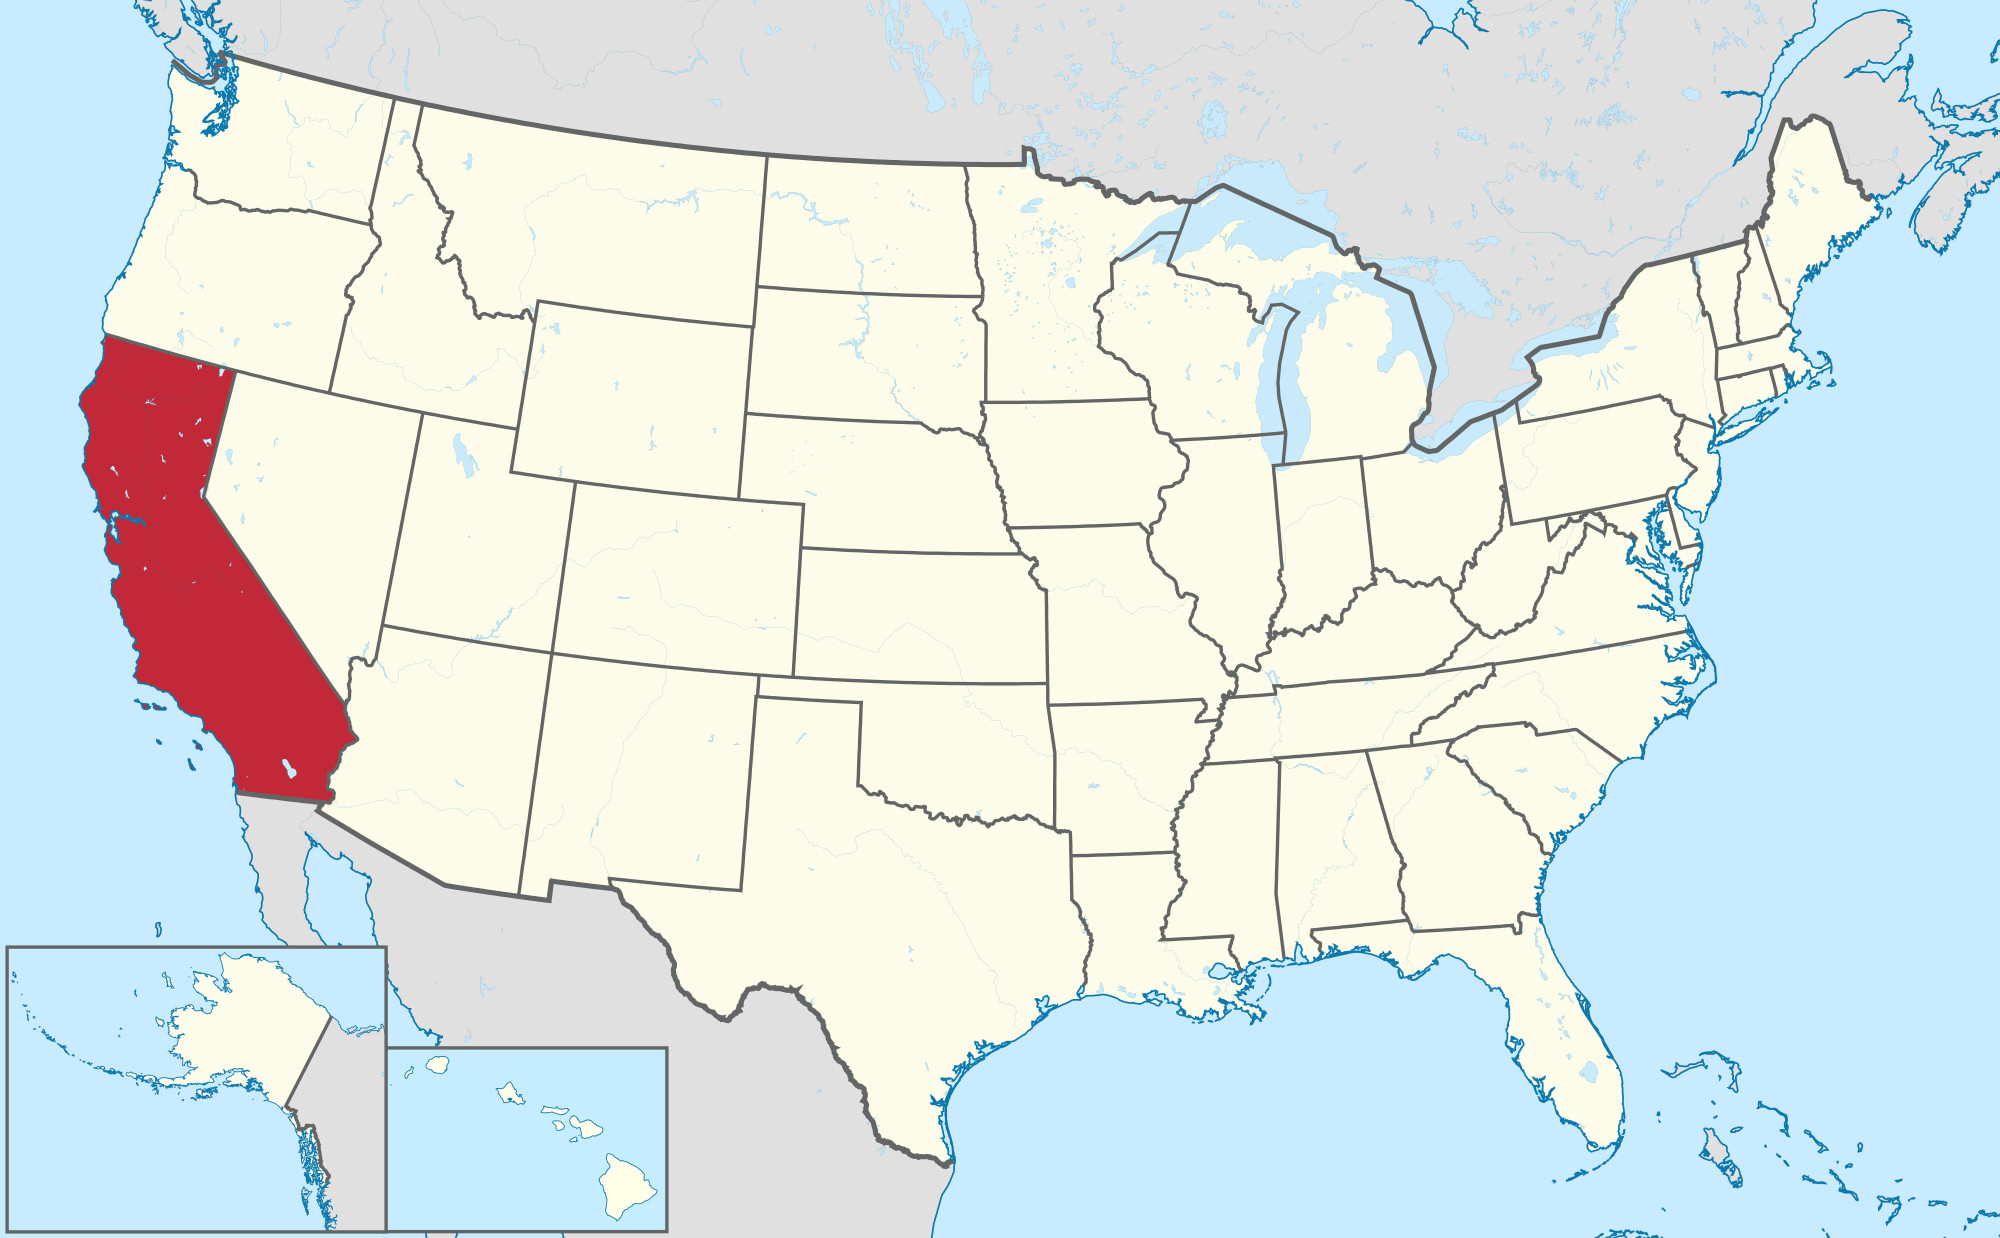 Where Is Garden Grove California On The Map Best Of List Of Cities - Where Is Garden Grove California On The Map